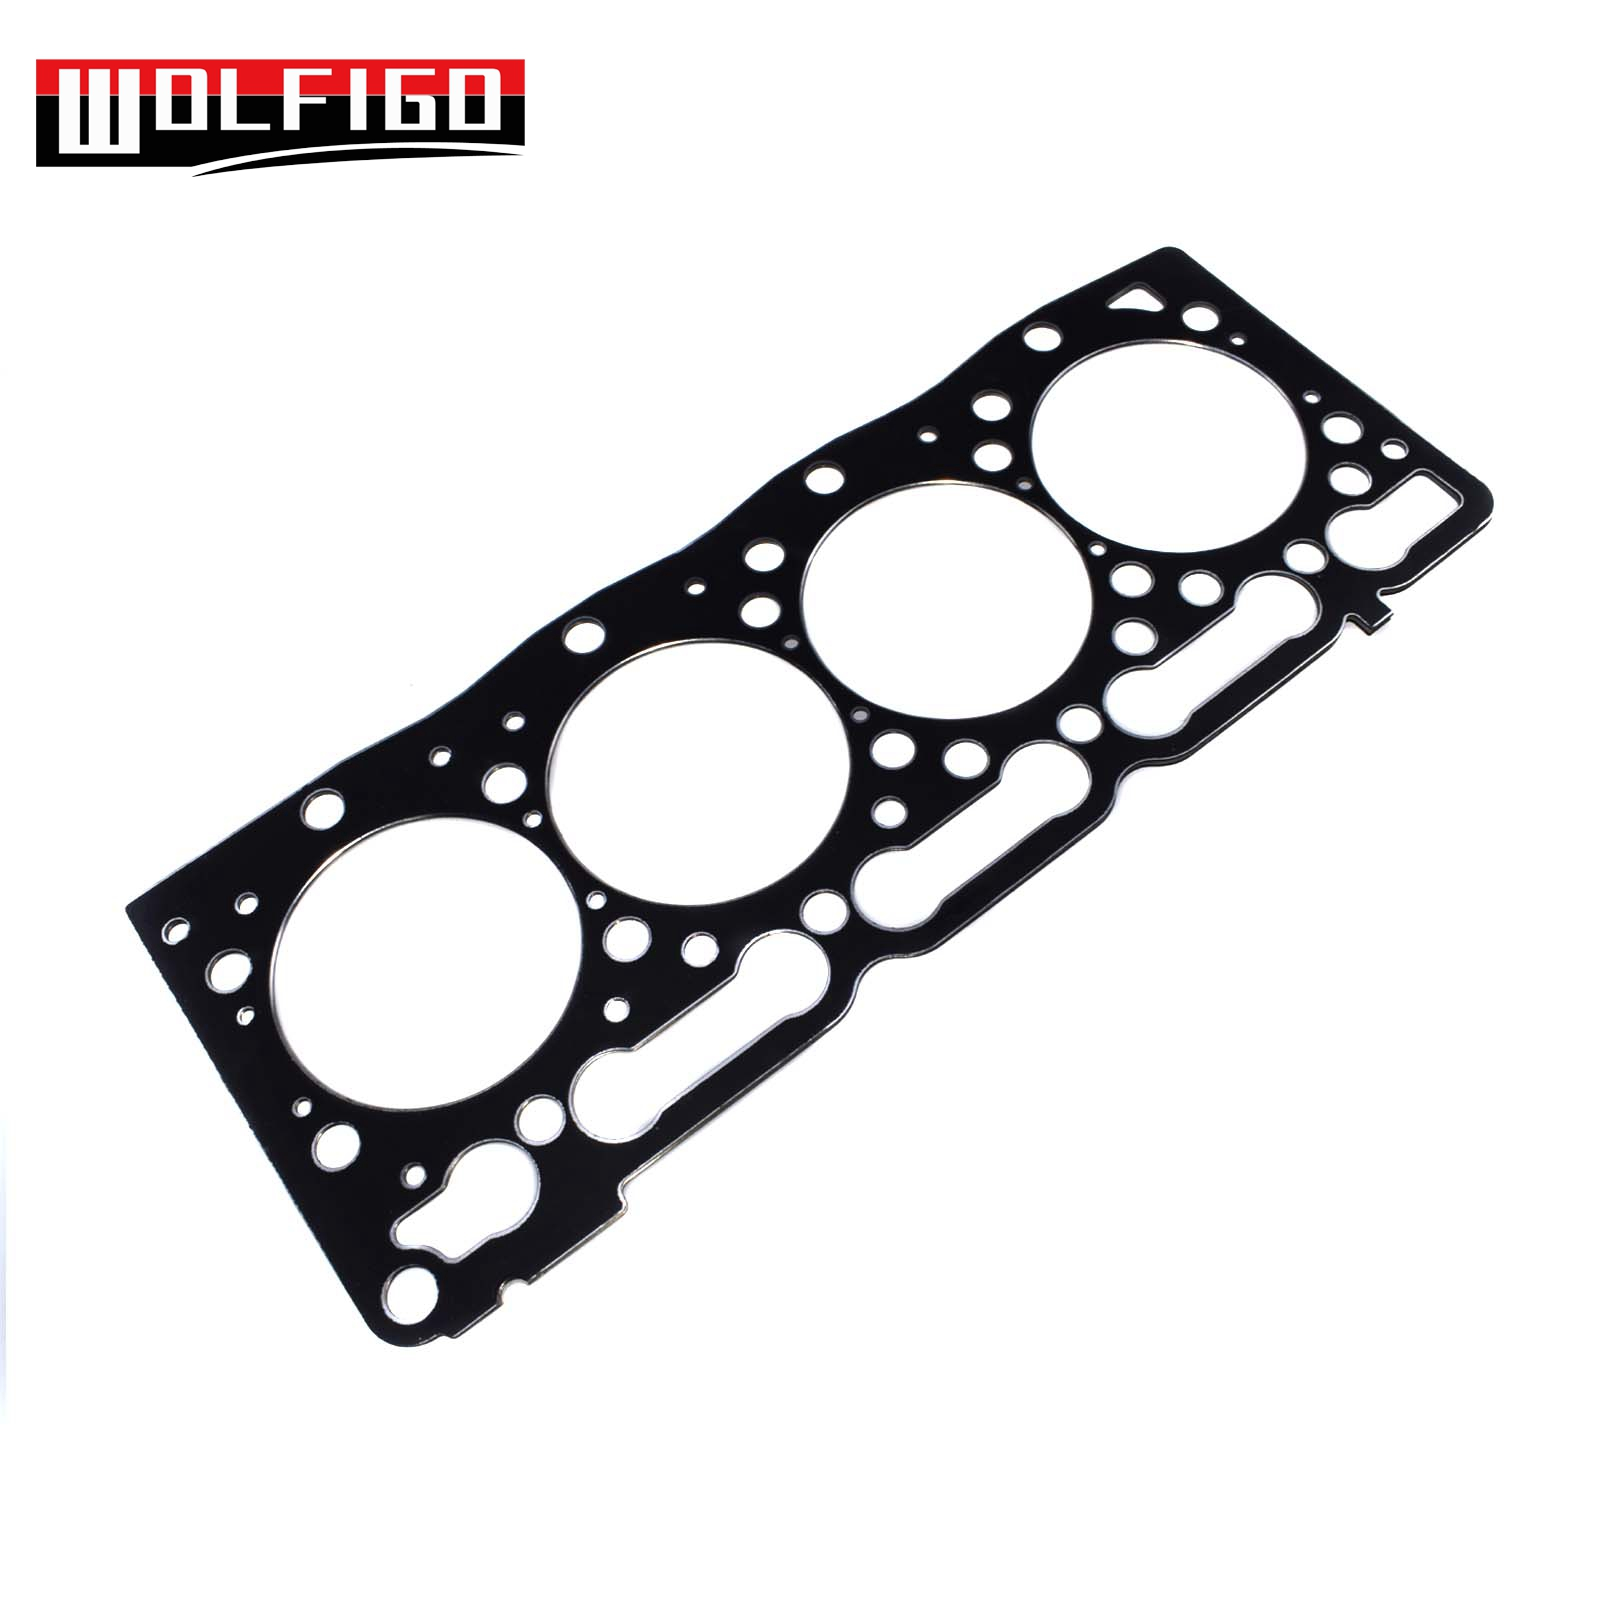 small resolution of wolfigo for kubota v1505 v1505e v1505 bh engine cylinder head gasket 16394 03310 new in cyl head valve cover gasket from automobiles motorcycles on